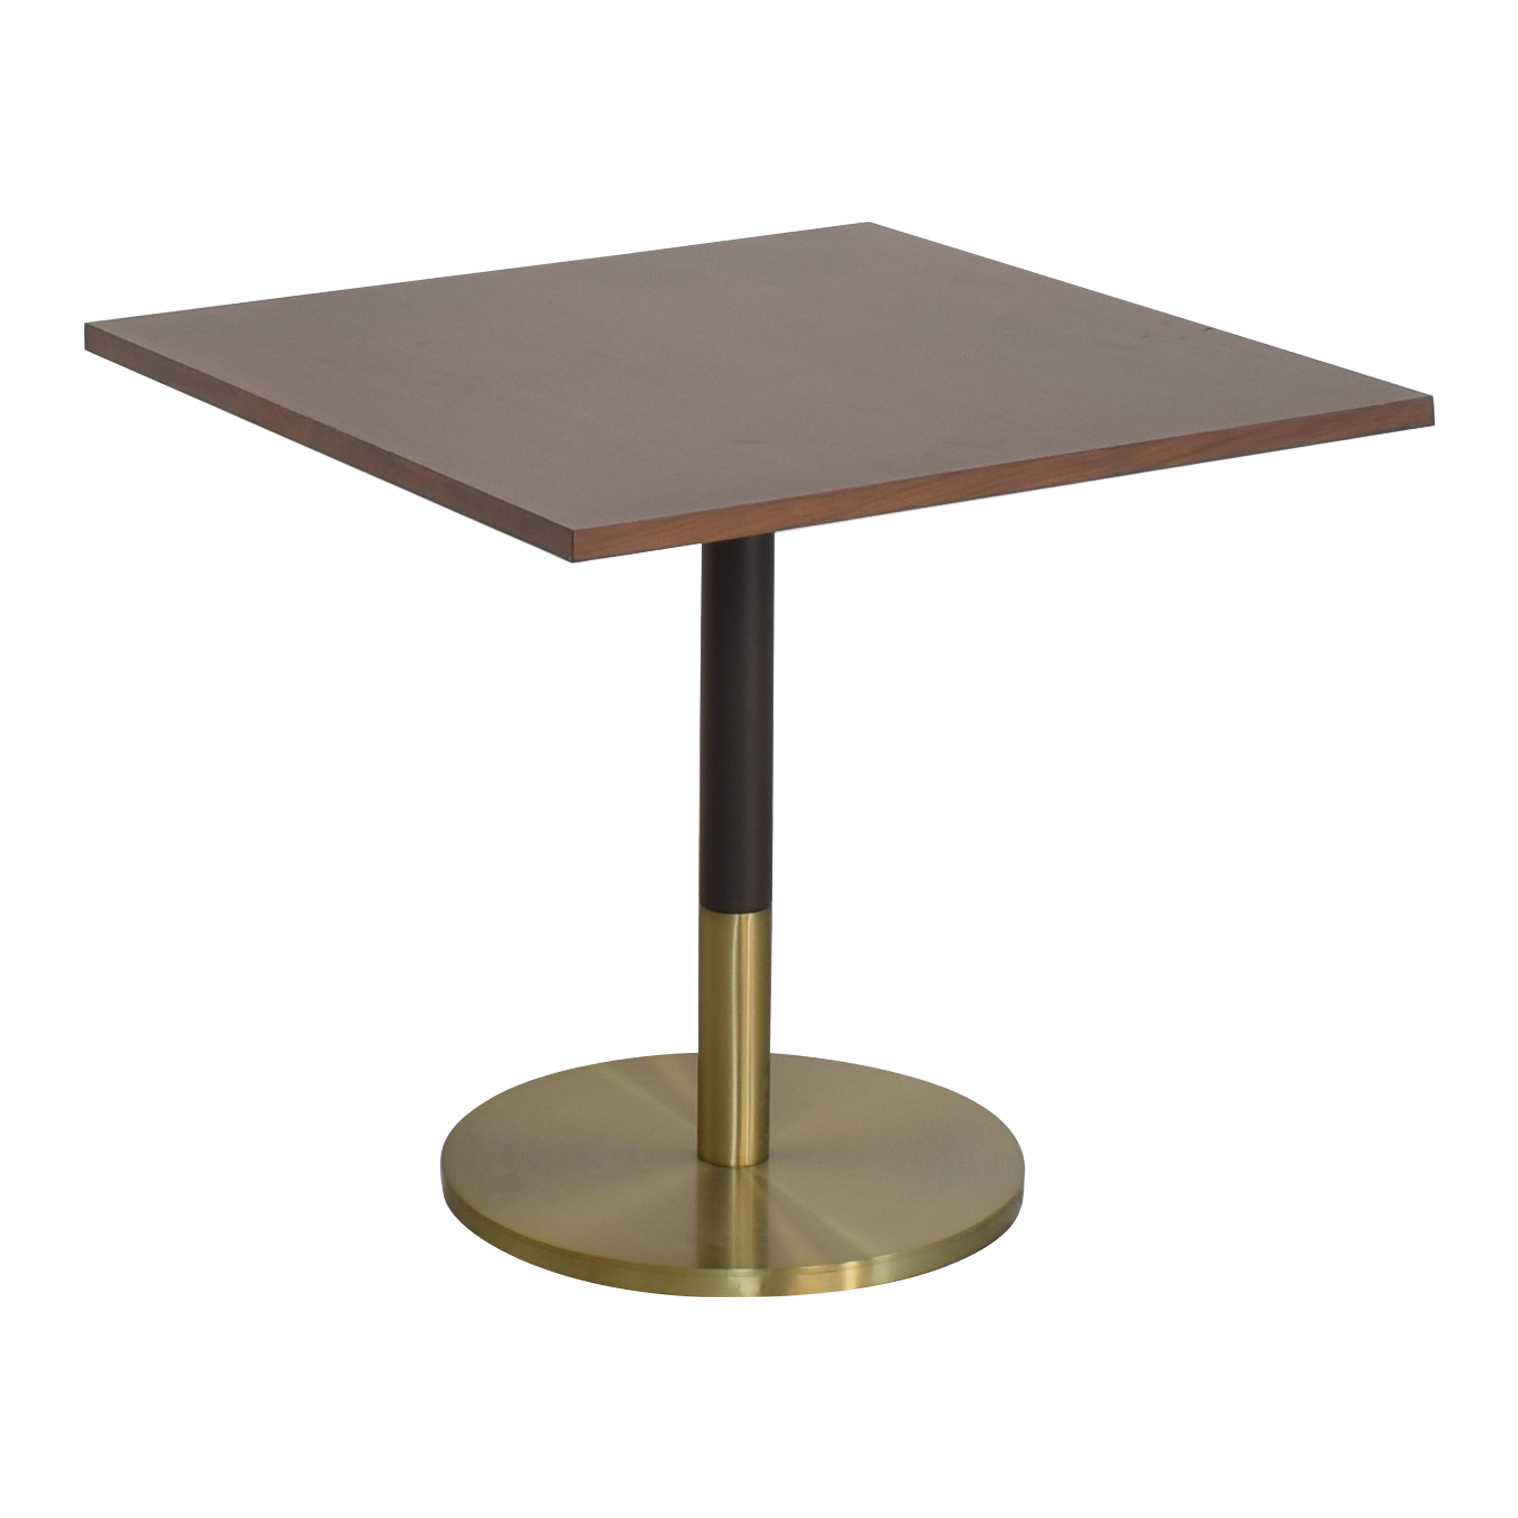 West Elm West Elm Square Bistro Table price